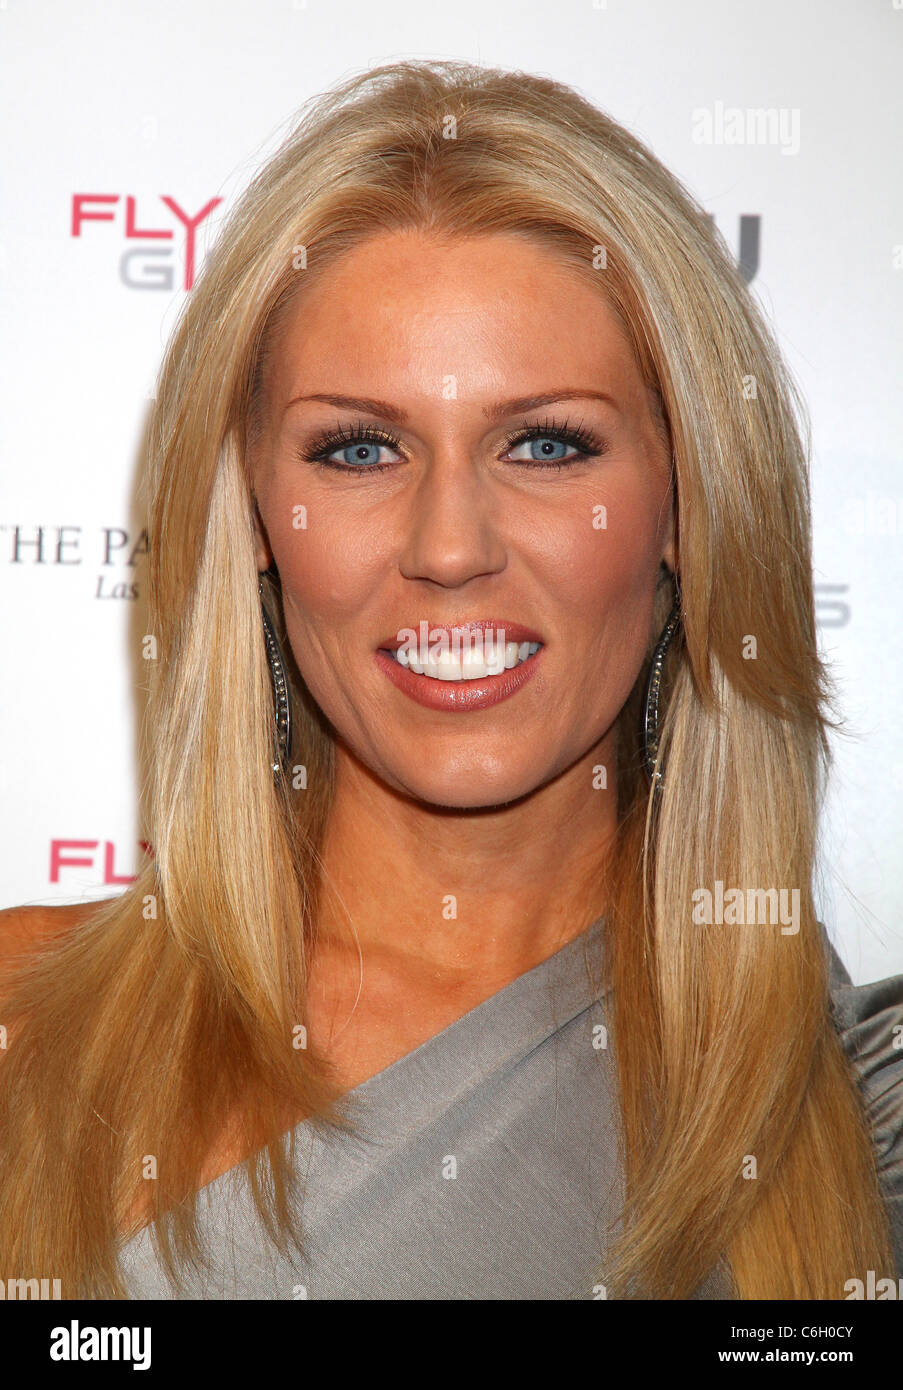 Chris Rossi And Gretchen Rossi Stock Photos Chris Rossi And